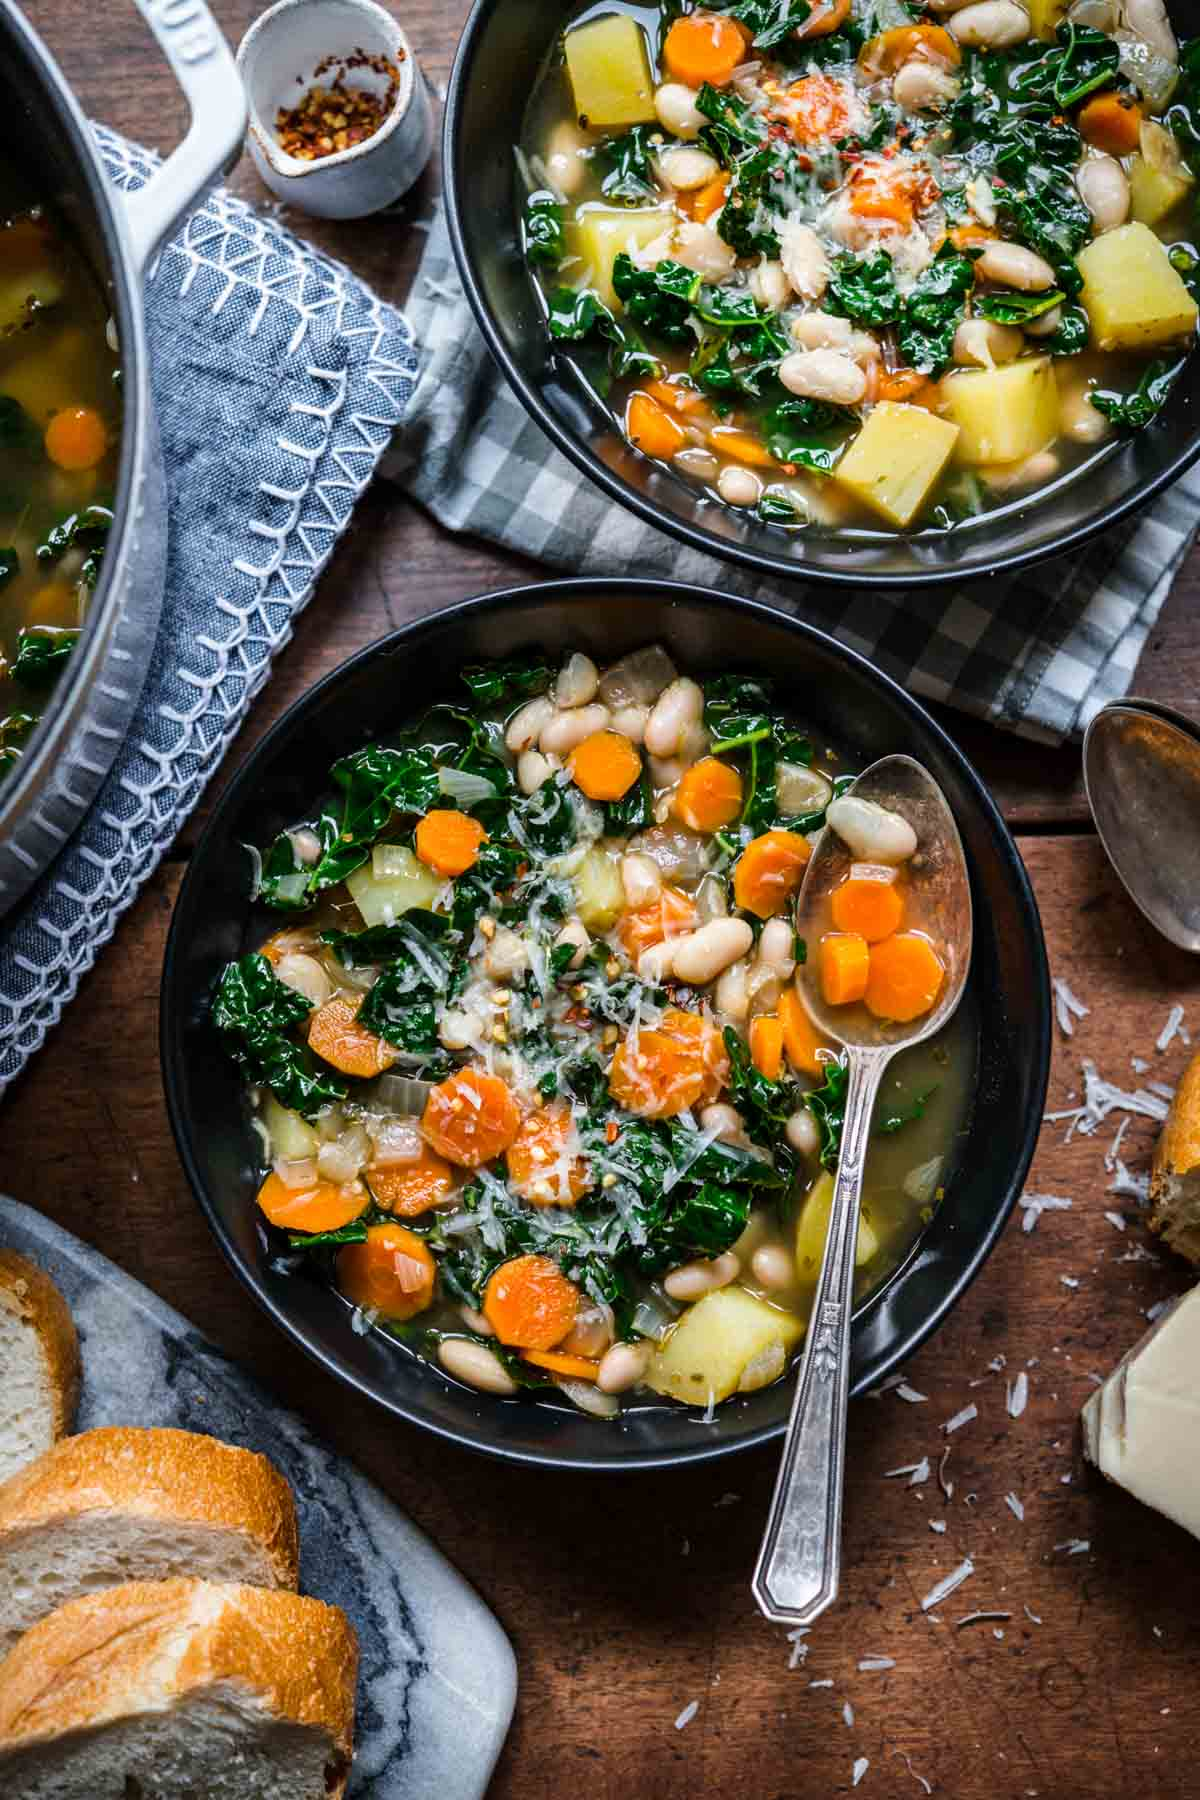 Overhead view of two bowls of white bean and kale soup with beans, carrots, and kale.